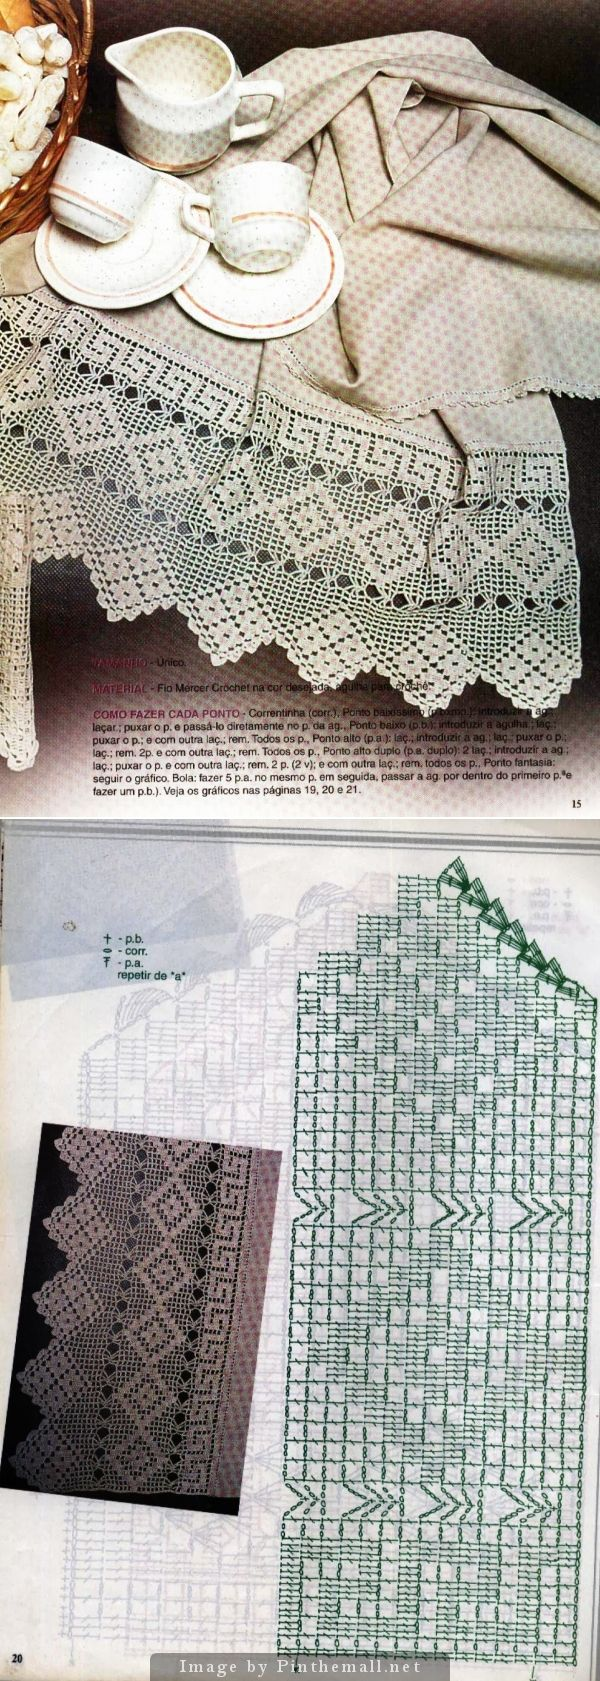 Filet crochet lace edging, Greek key & diamond points ~~ http://crocheartemanuais.blogspot.com/2013/12/barradinhos_7447.html